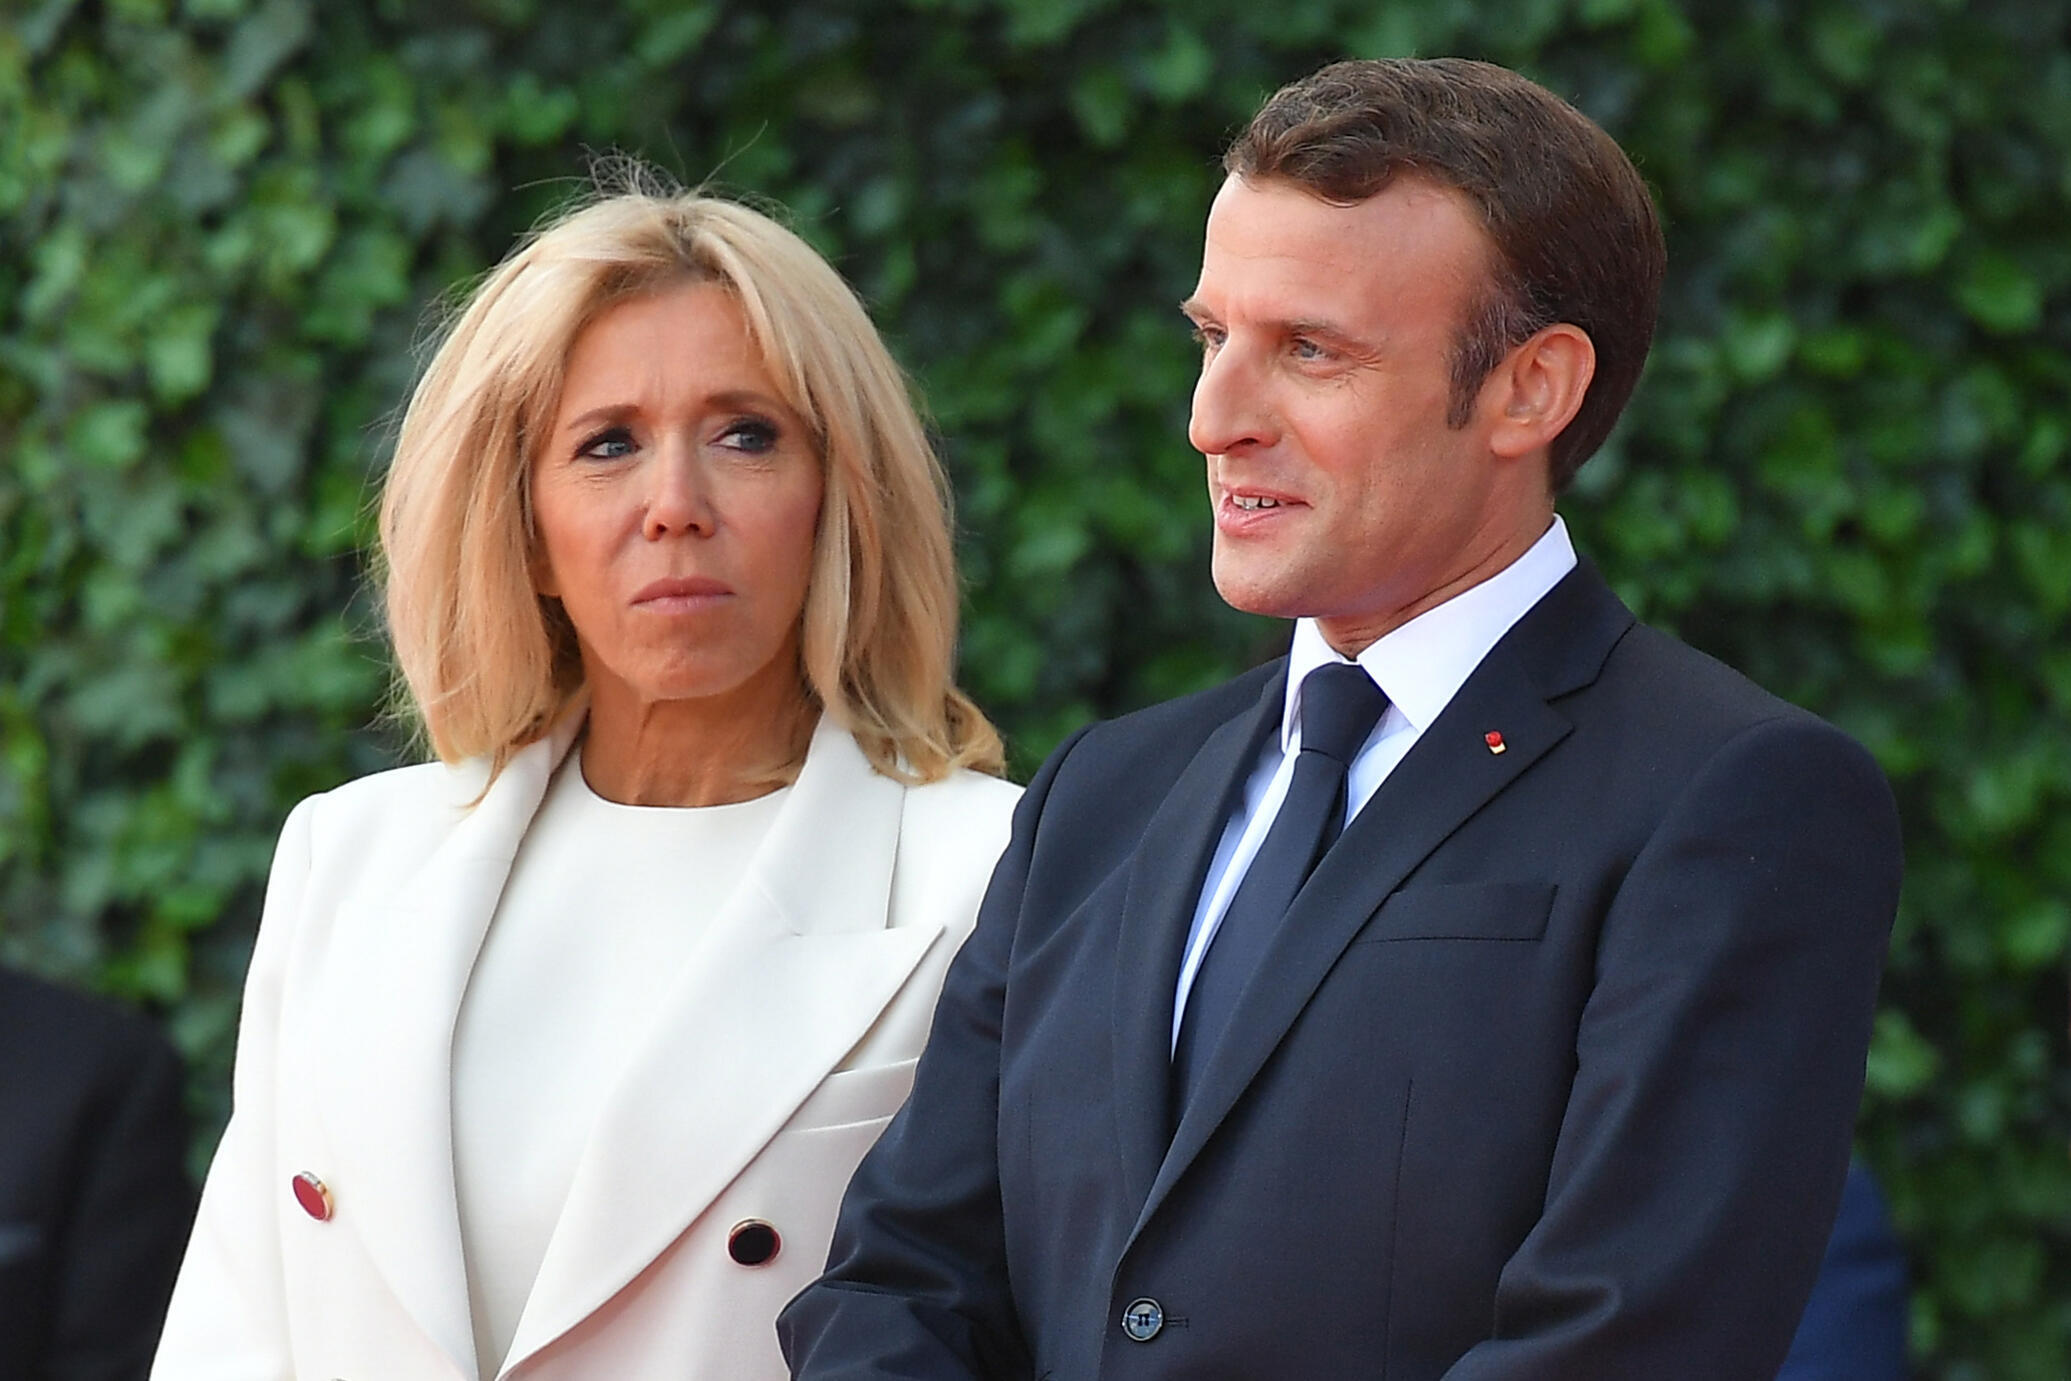 French President Emmanuel Macron (R) and French President's wife Brigitte Macron attend a French-US ceremony at the Normandy American Cemetery and Memorial in Colleville-sur-Mer, France, on June 6, 2019